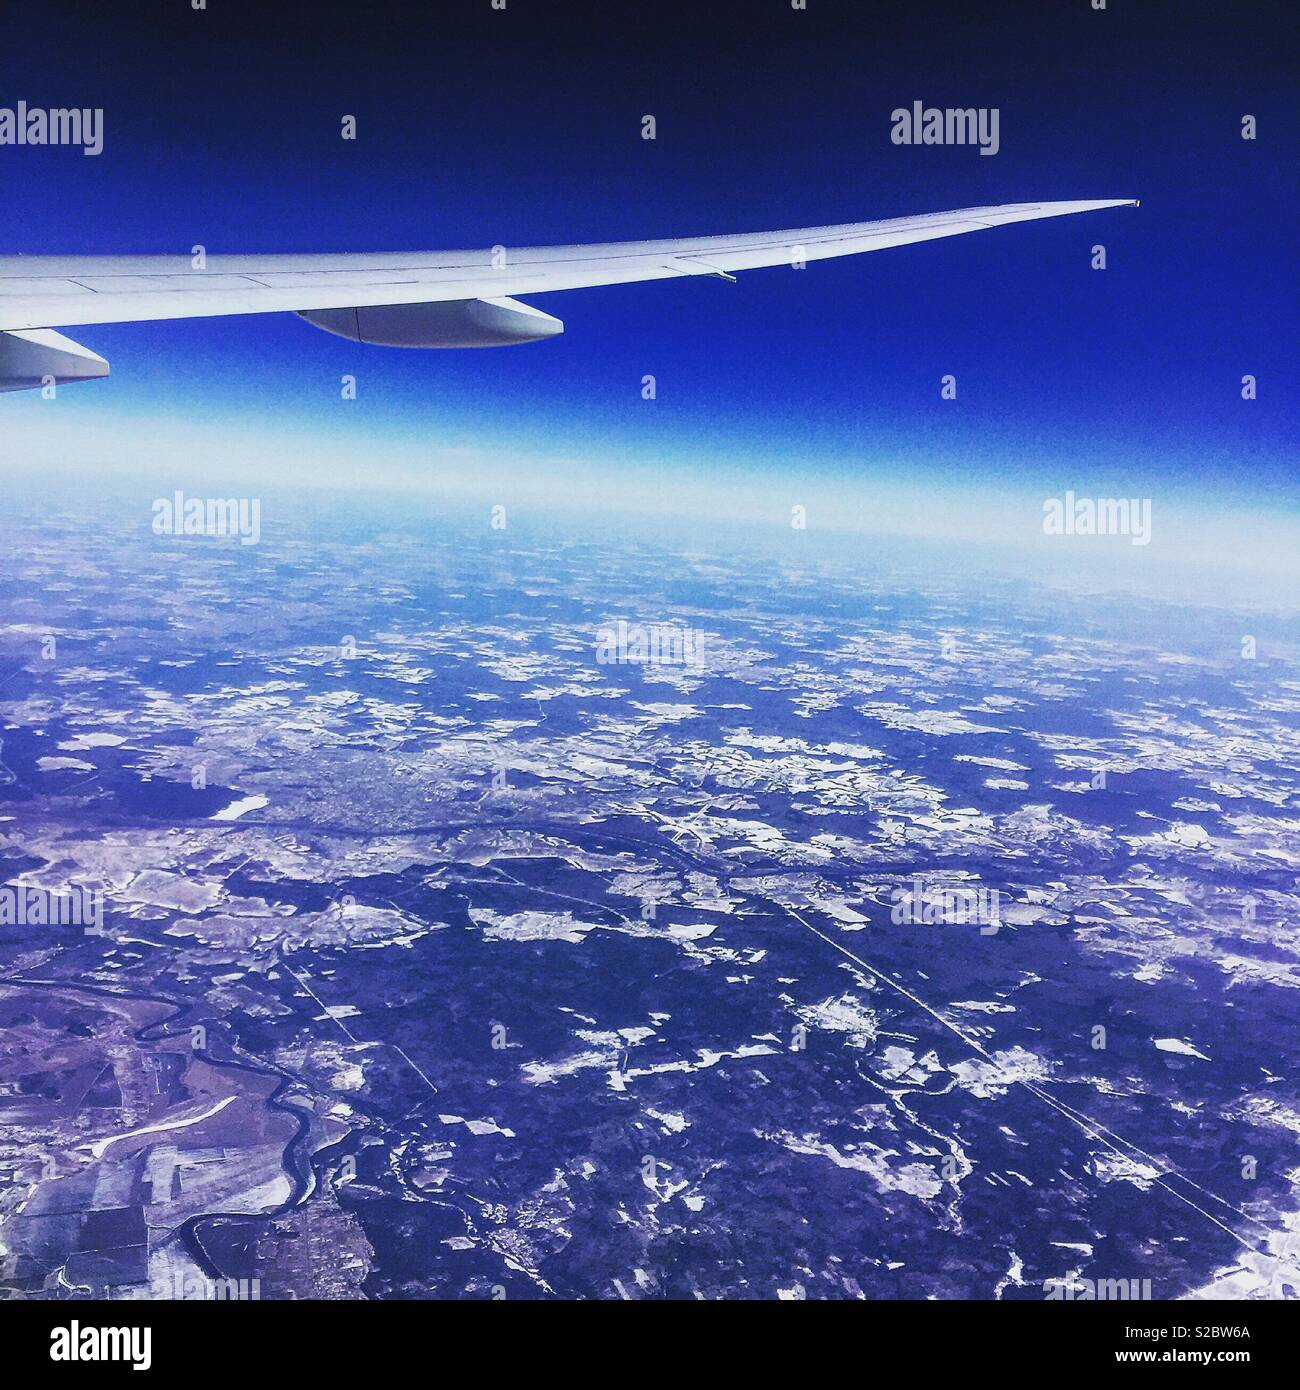 Up in the air, - Stock Image